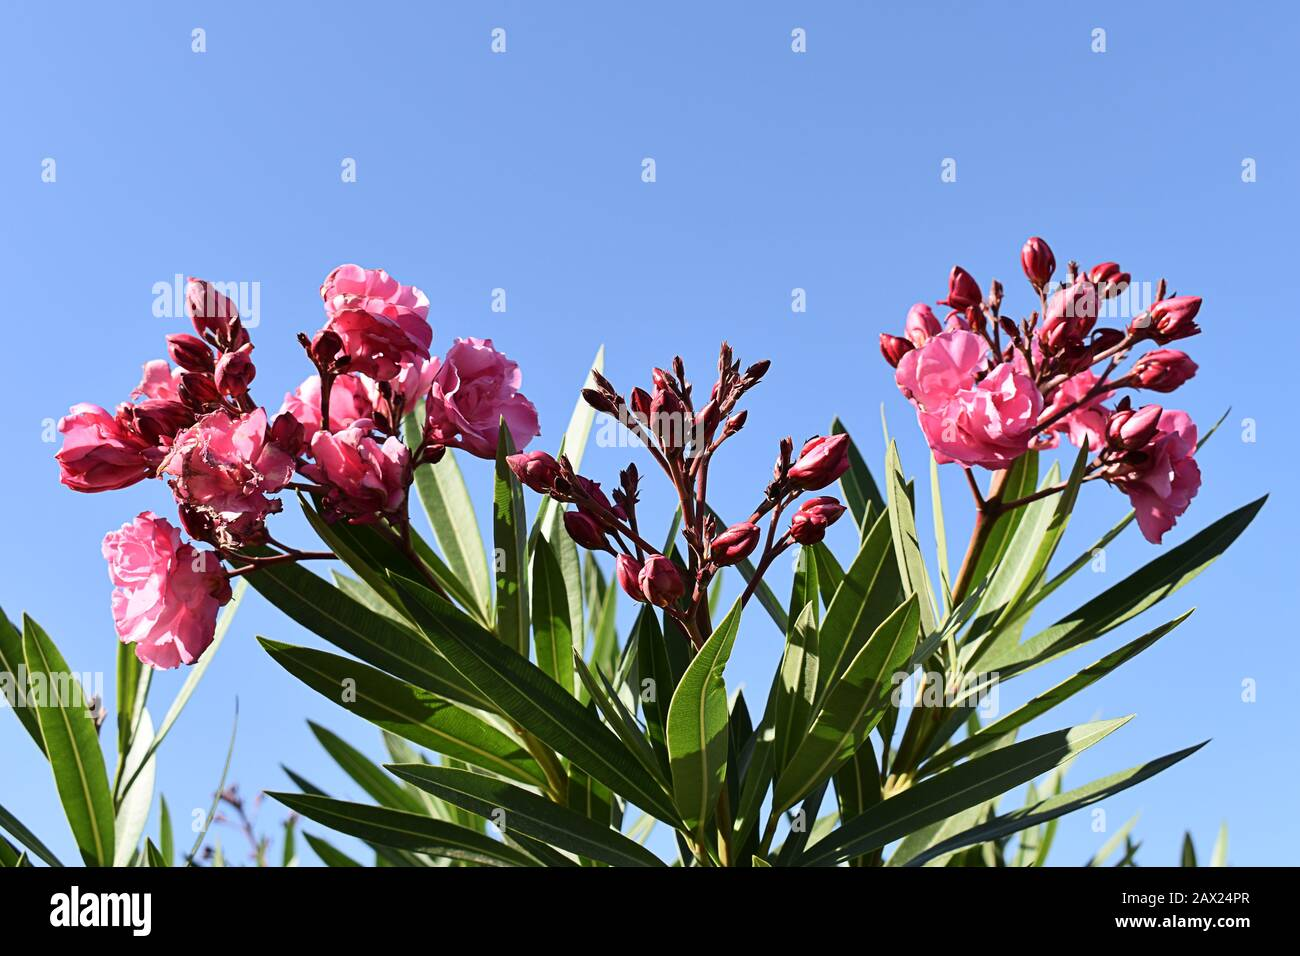 Pink Flowering Oleander Bush Set Against Bright Blue Sky Maspalomas Gran Canaria Canary Islands Stock Photo Alamy